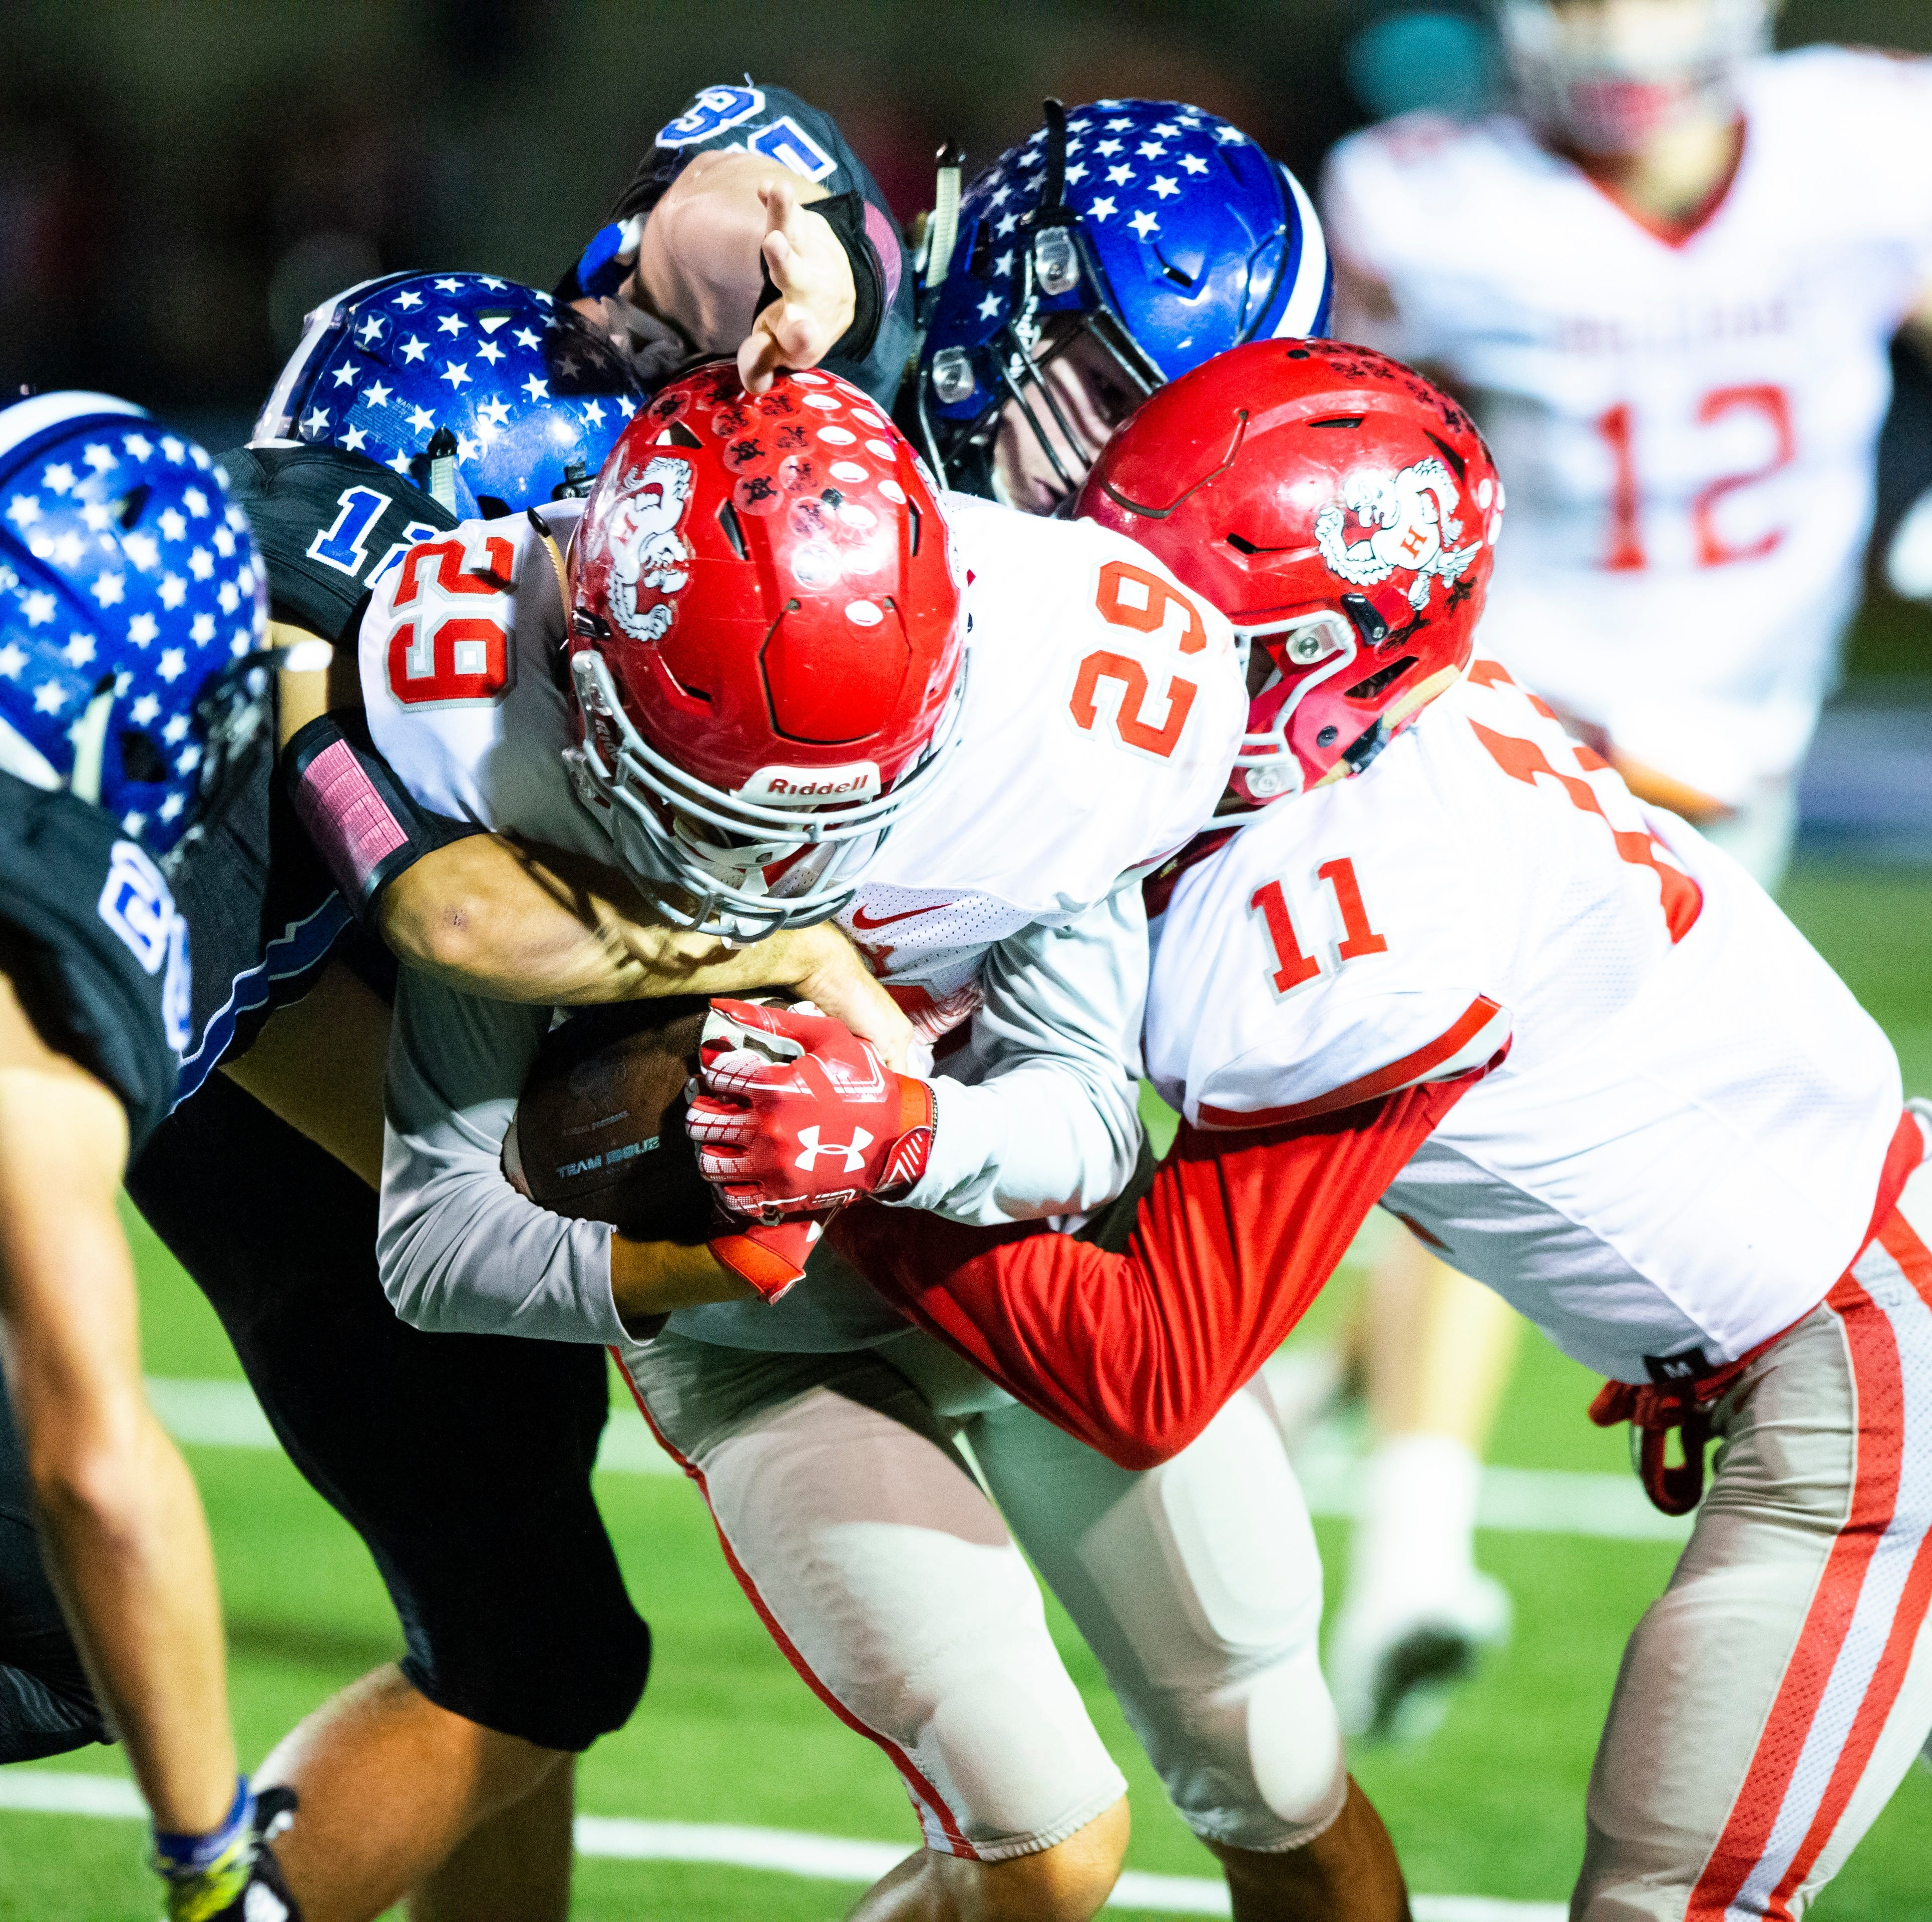 Wichita Falls area state quarterfinal predictions